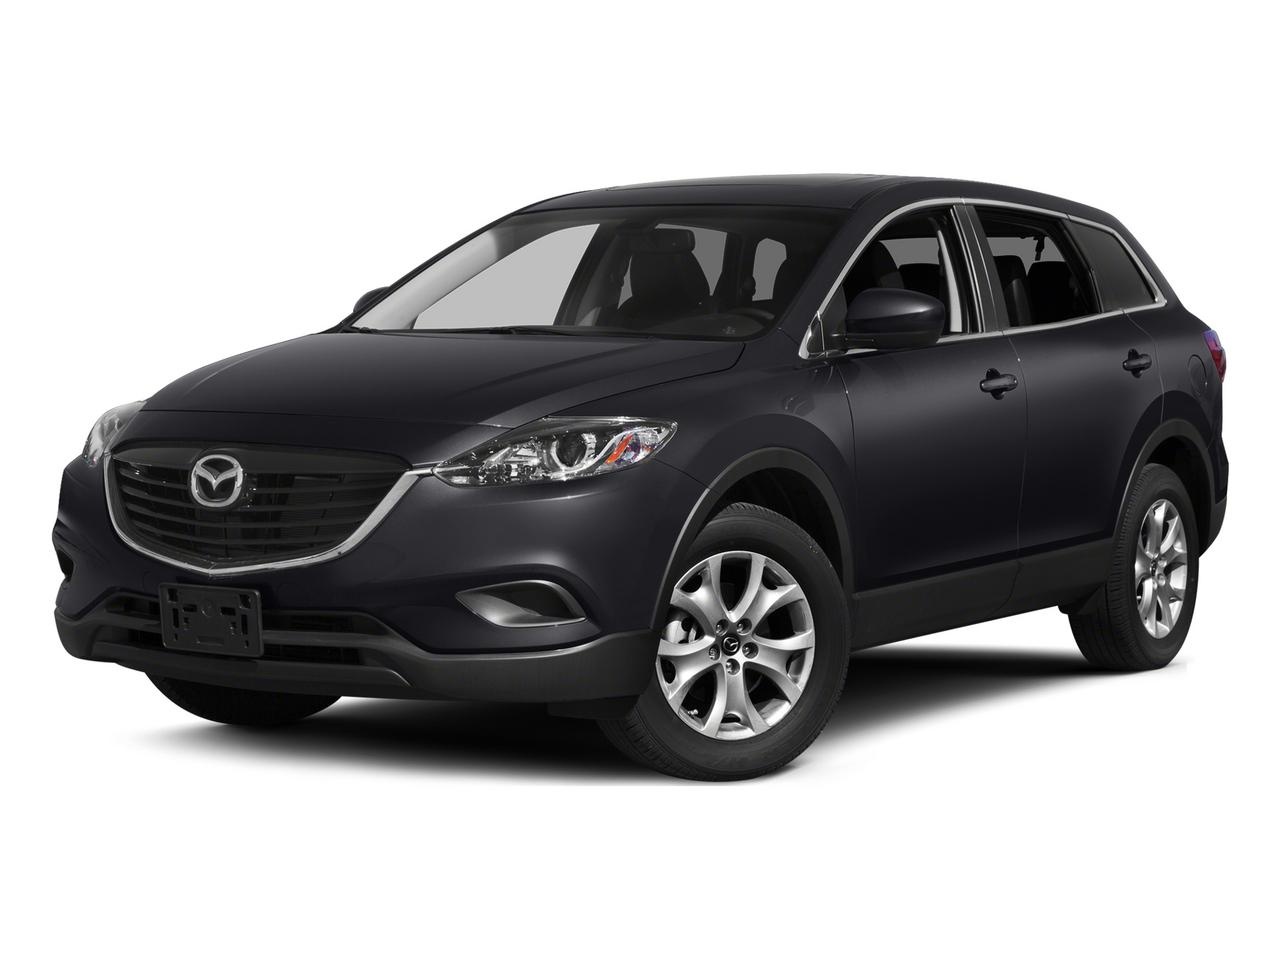 2015 Mazda CX-9 Vehicle Photo in Buford, GA 30519